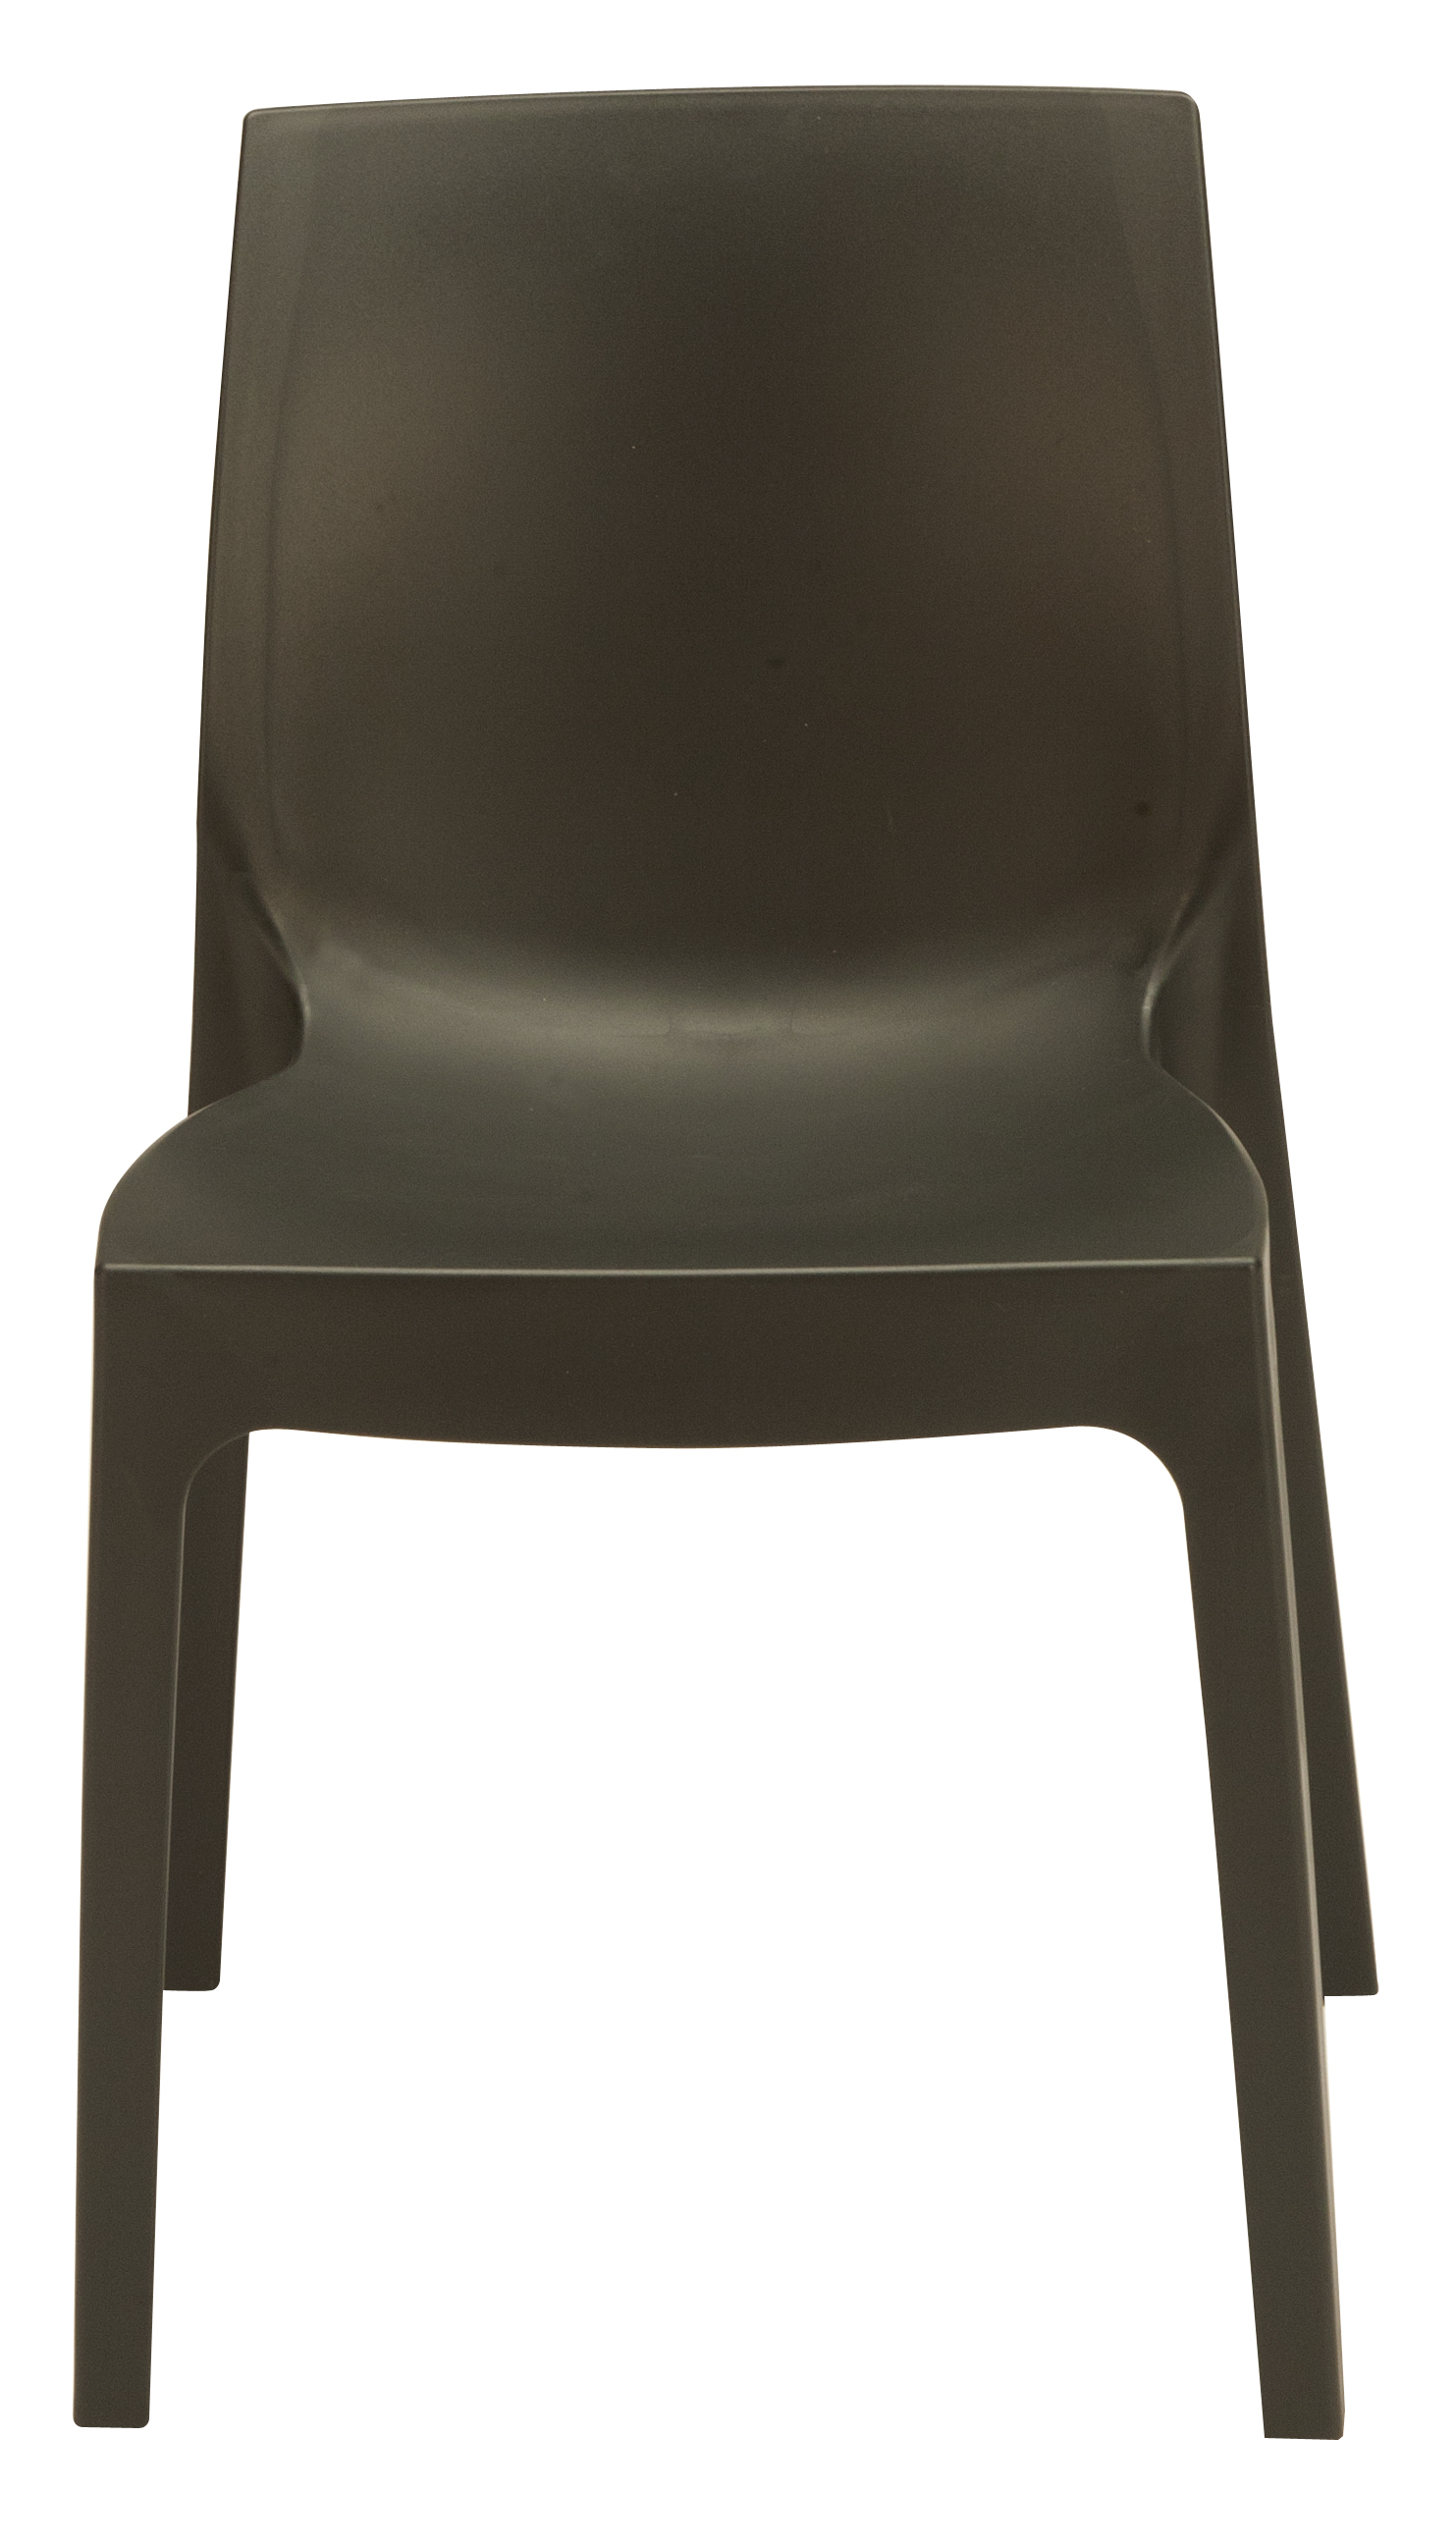 Sg1276 Metal Frame Stacking Chairs Ace Furniture